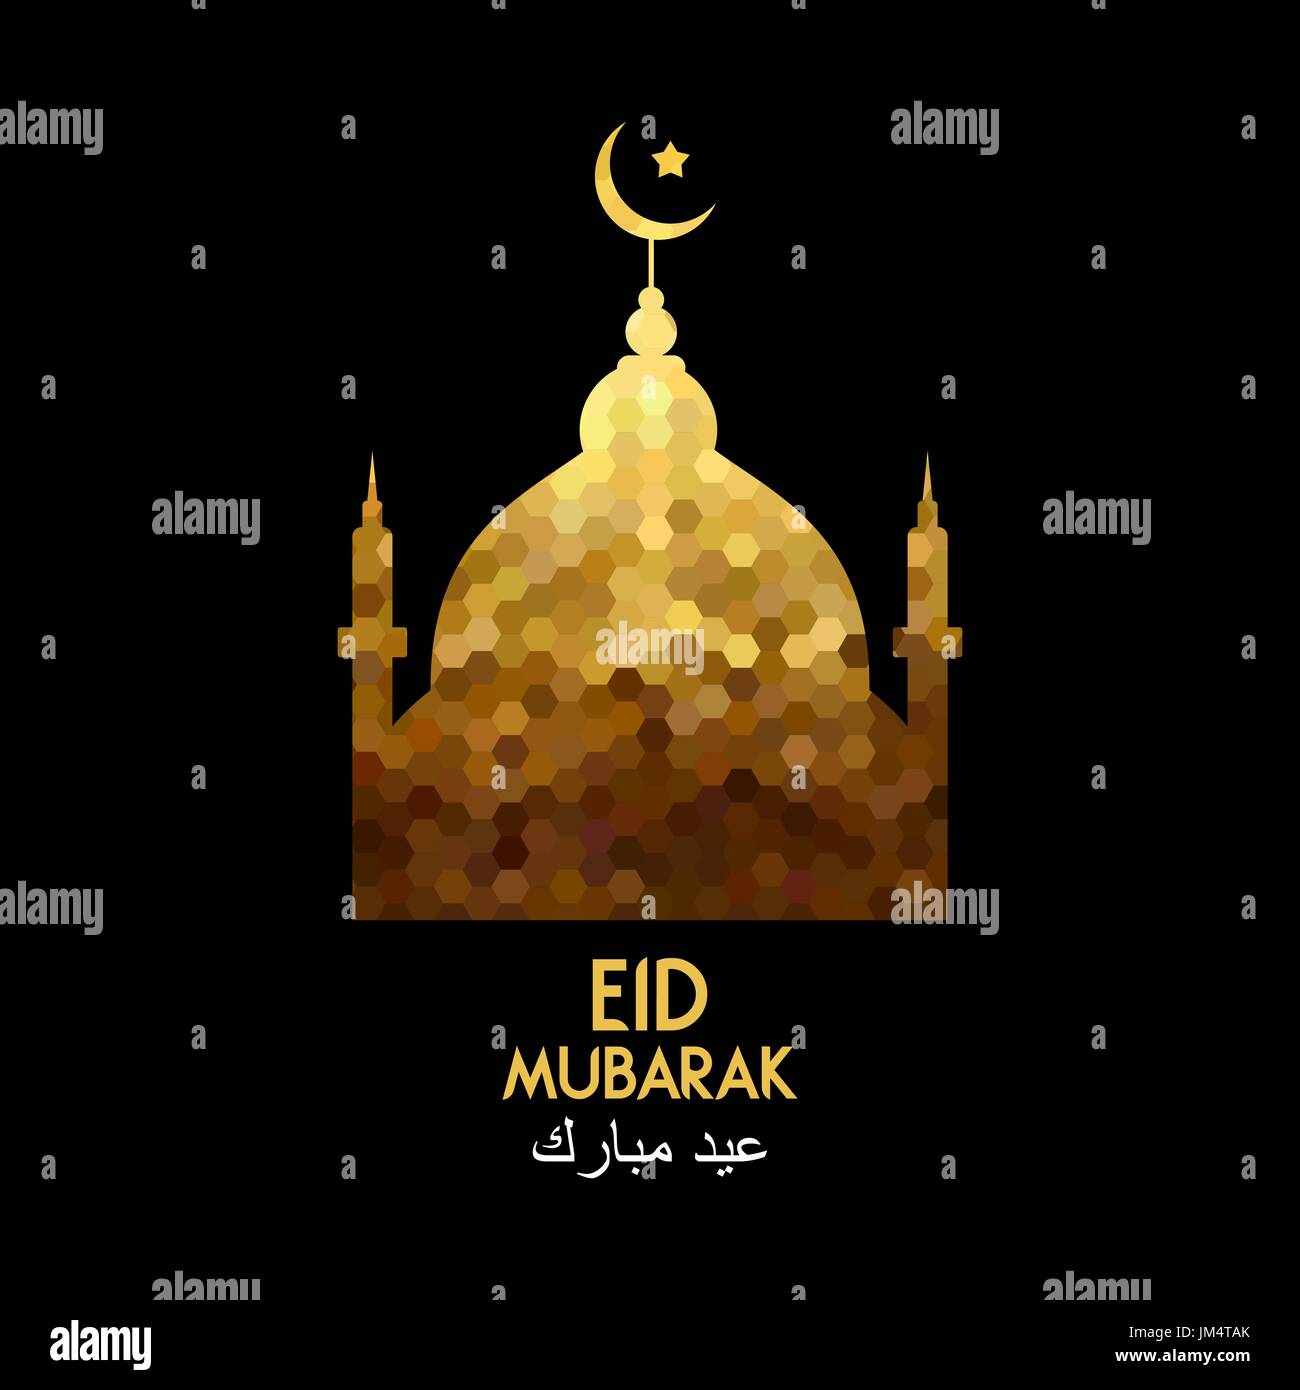 Eid Mubarak Greeting Card For Muslim Holiday Season Traditional